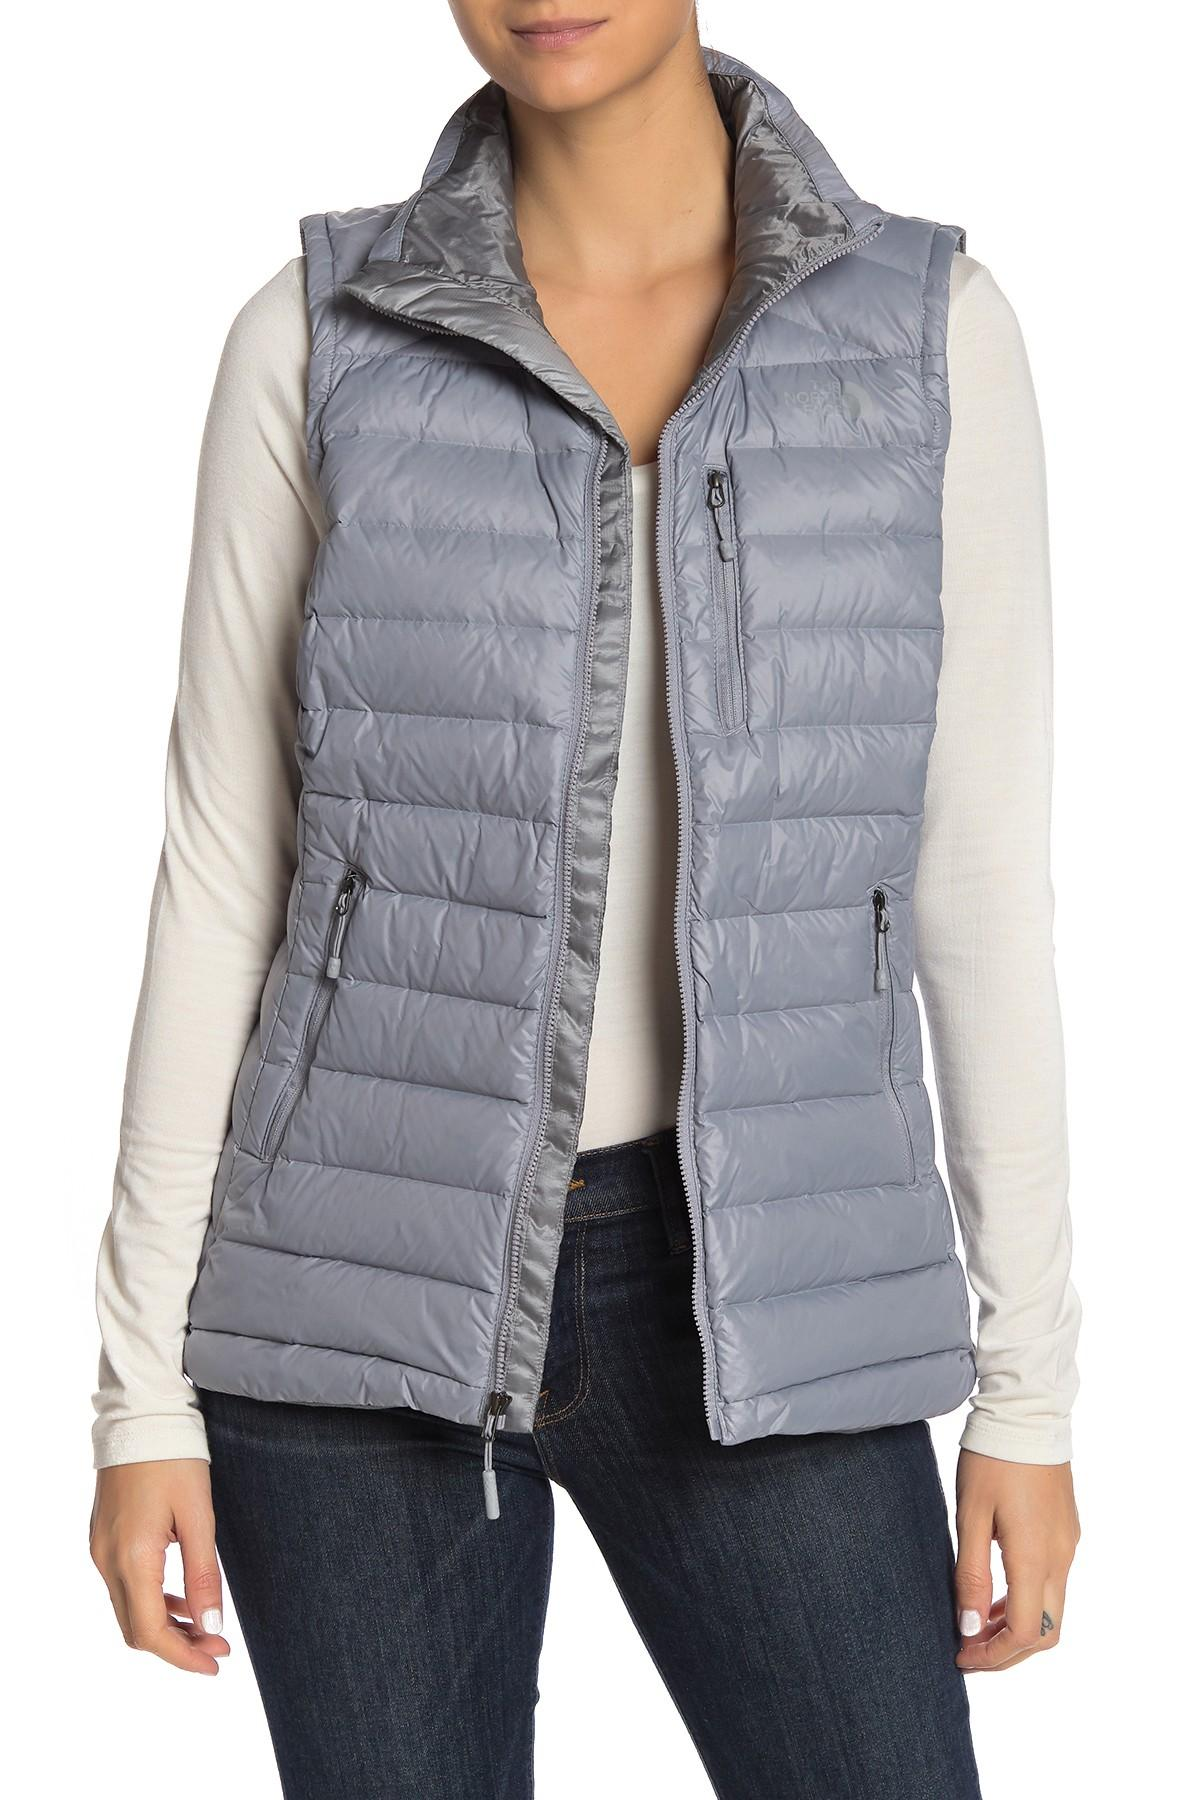 3f74eef373e7 Lyst - The North Face Mid Grey Morph Vest in Gray